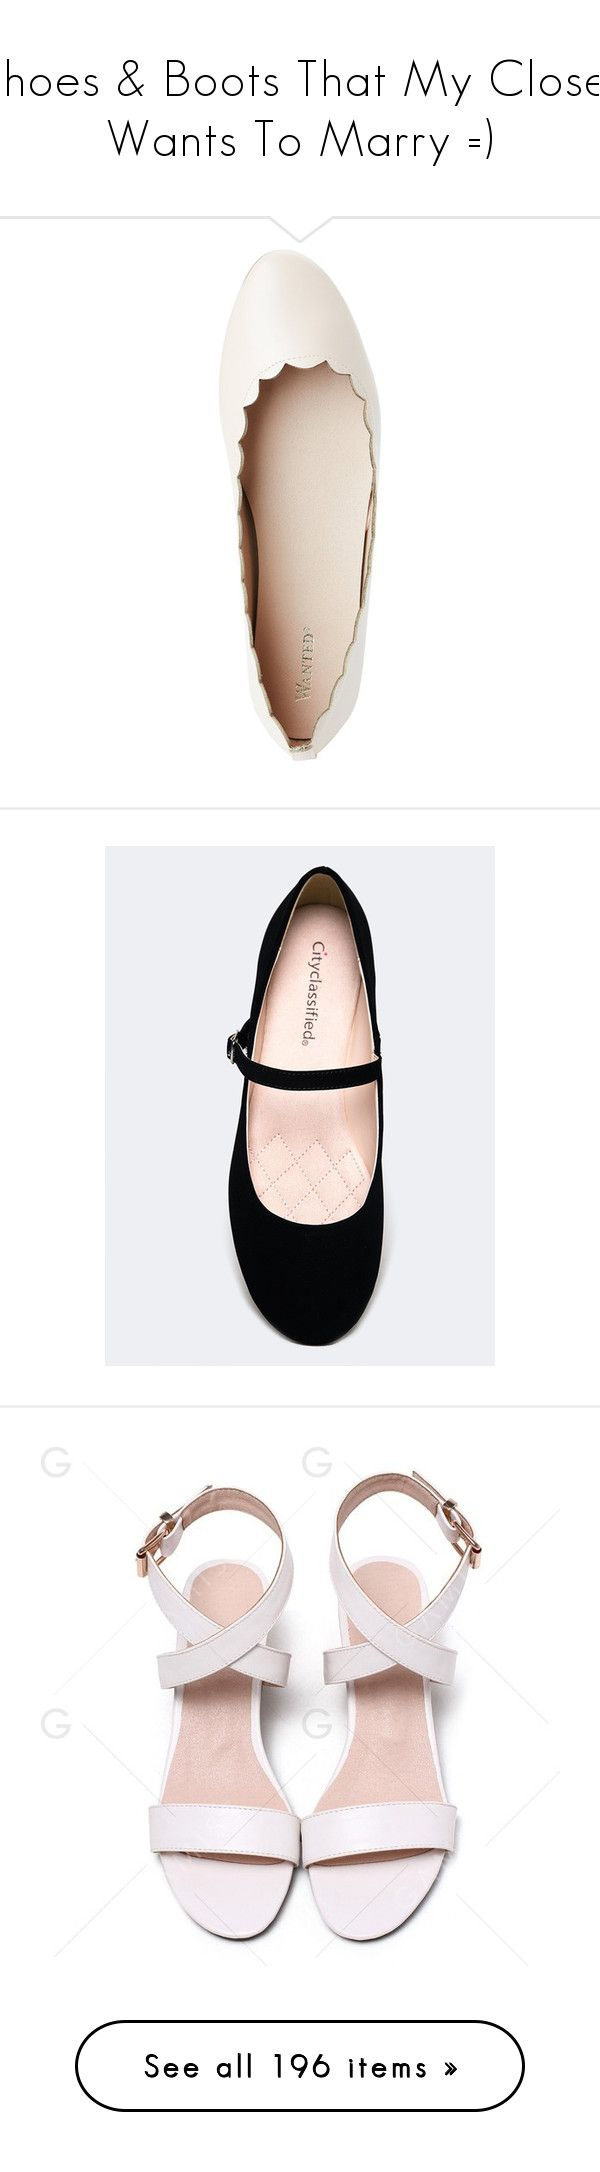 """""""Shoes & Boots That My Closet Wants To Marry =)"""" by allweknowisfalling ❤ liked on Polyvore featuring shoes, flats, nude flats, ballet shoes flats, ballet pumps, nude ballet shoes, nude ballet flats, city classified flats, ballet flats and mary jane shoes flats"""